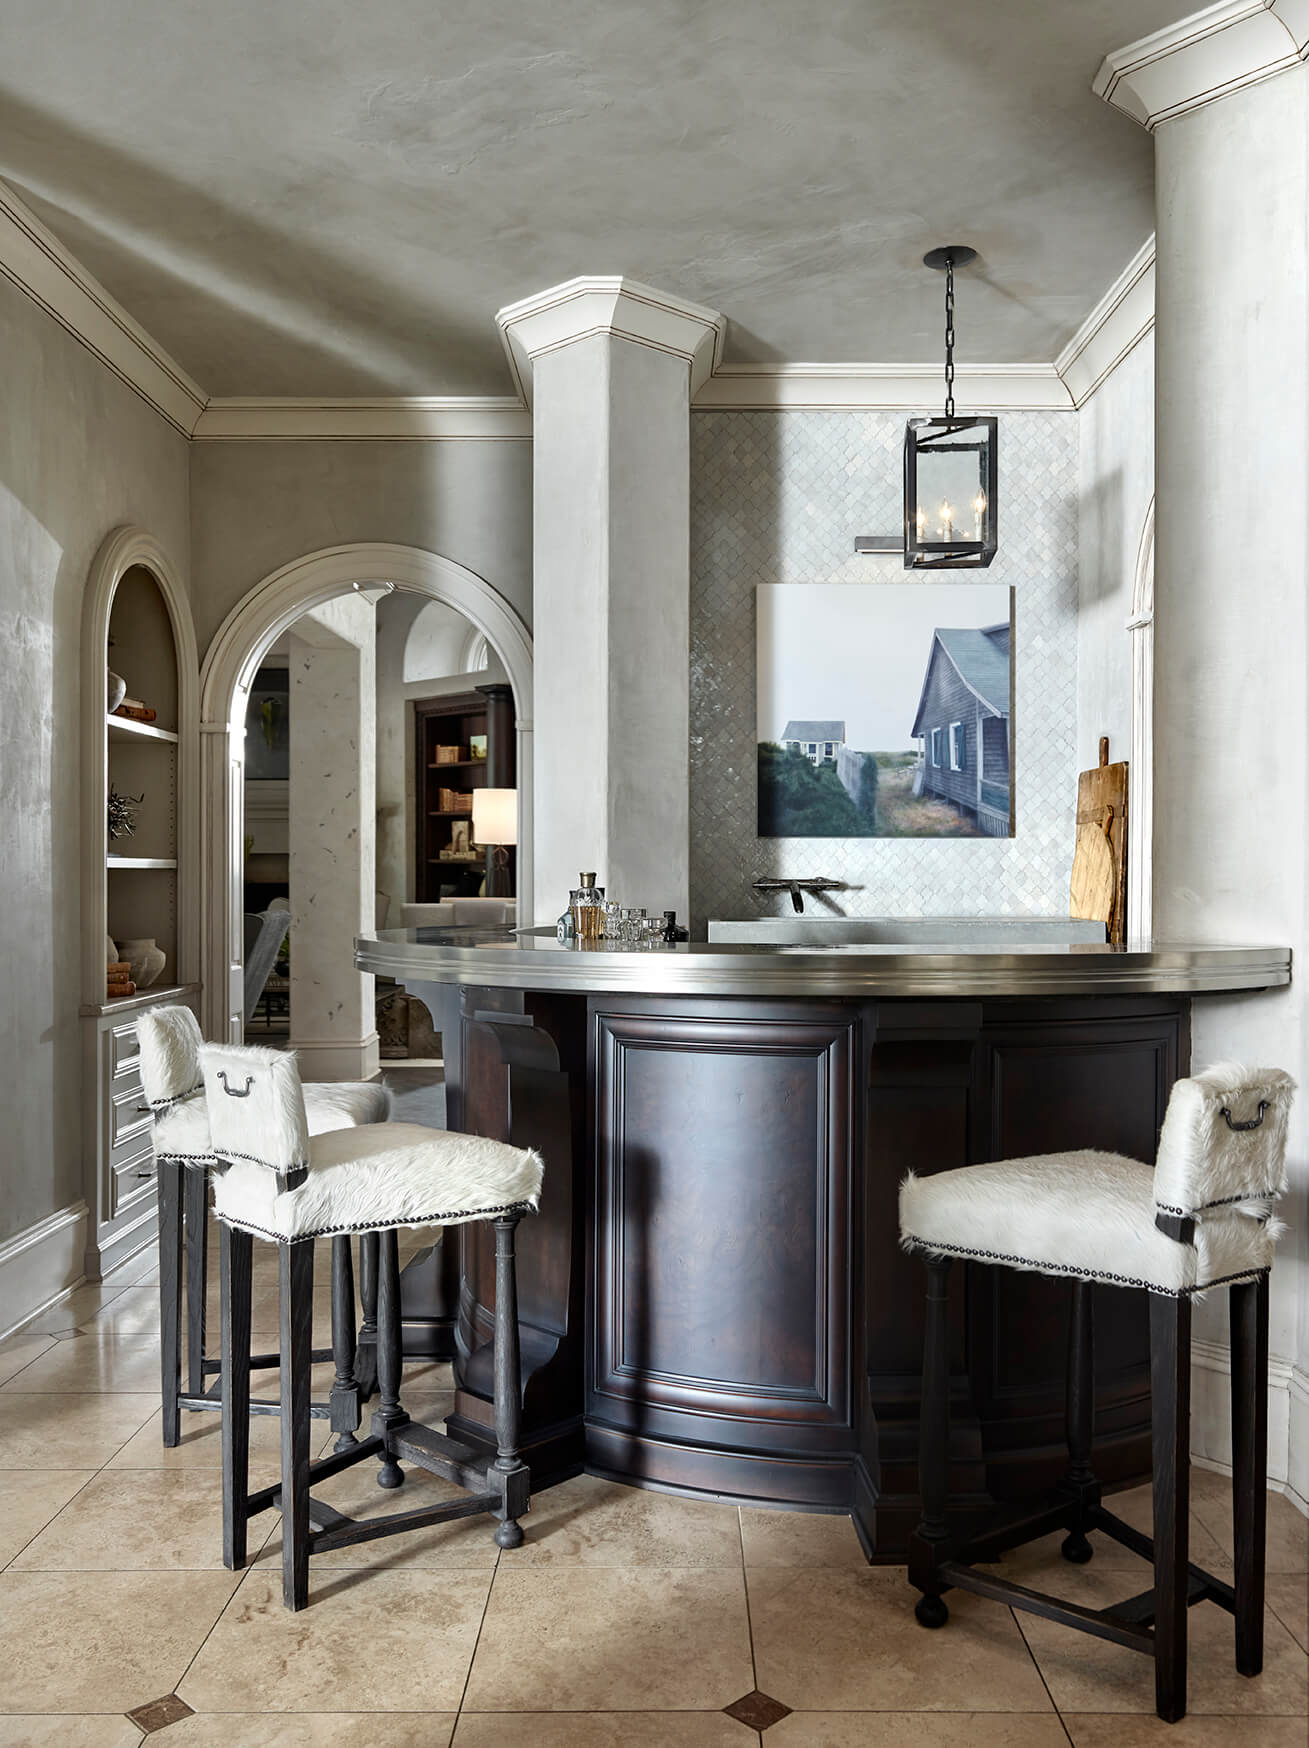 bar-area-fur-bar-stools-formal-transitional-bureau-interior-design-nashville-tn.jpg